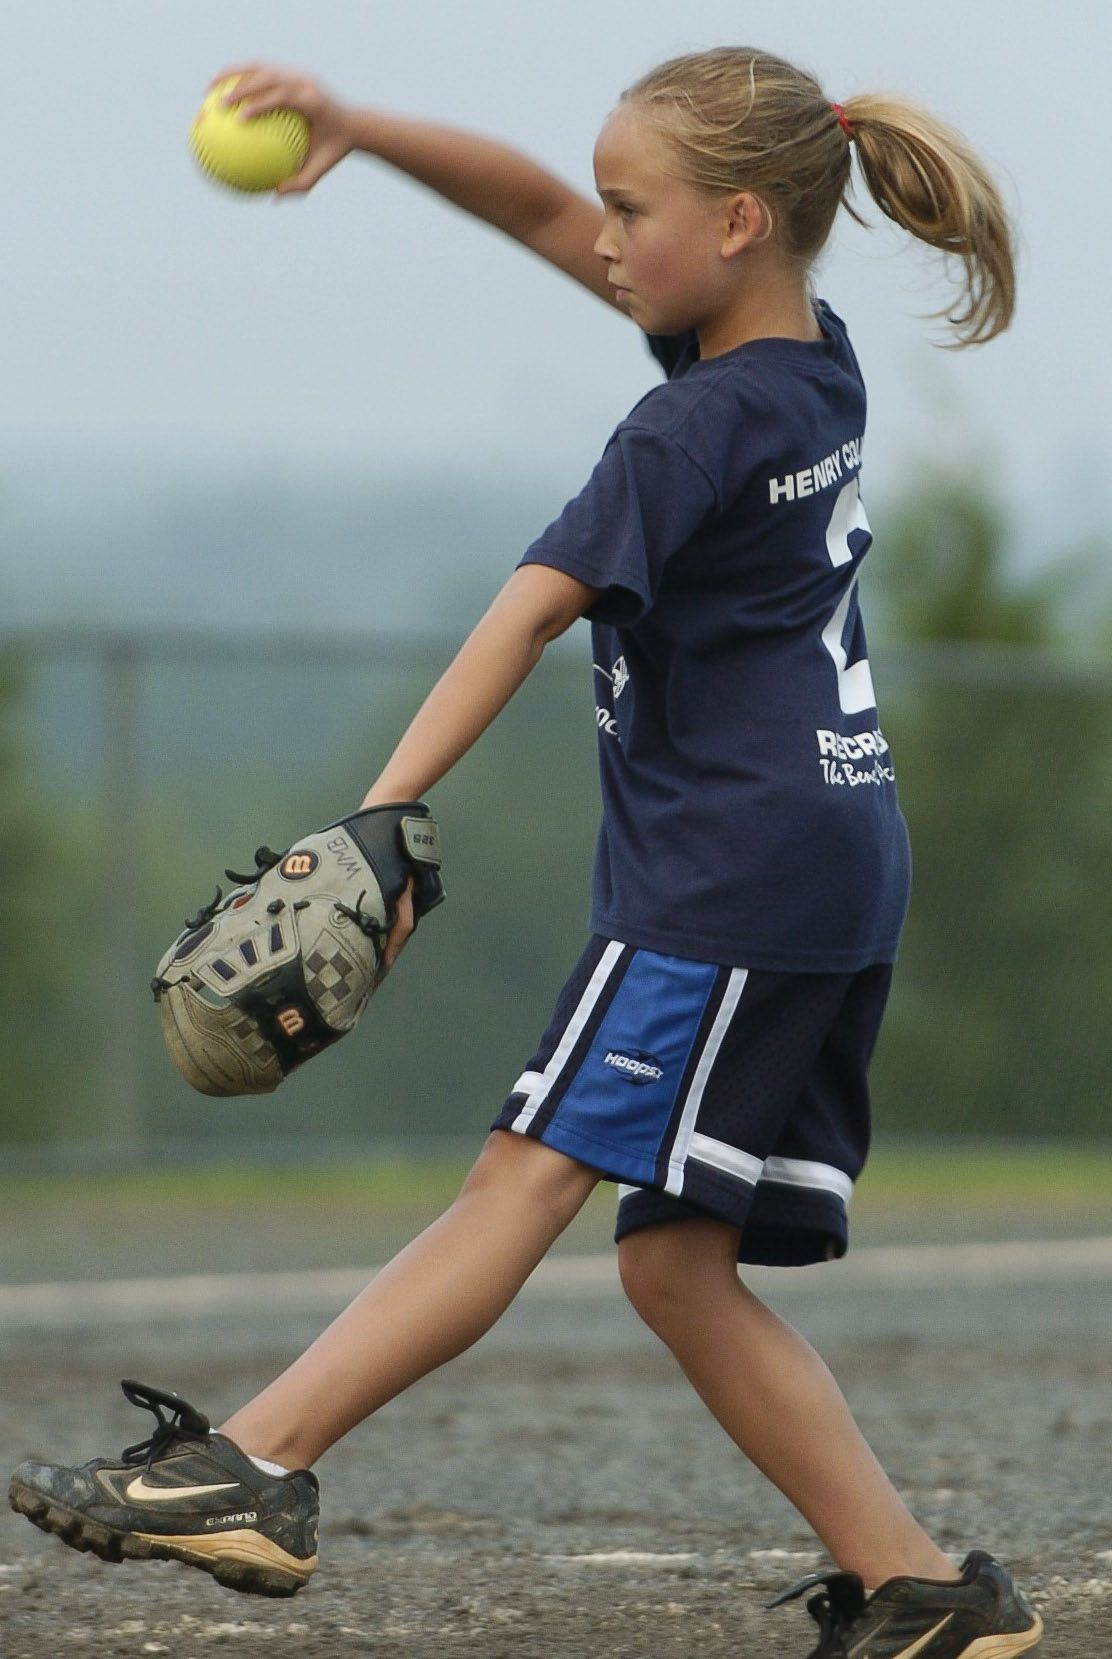 Softball. Years 1 to 10 sourcebook module. The State of